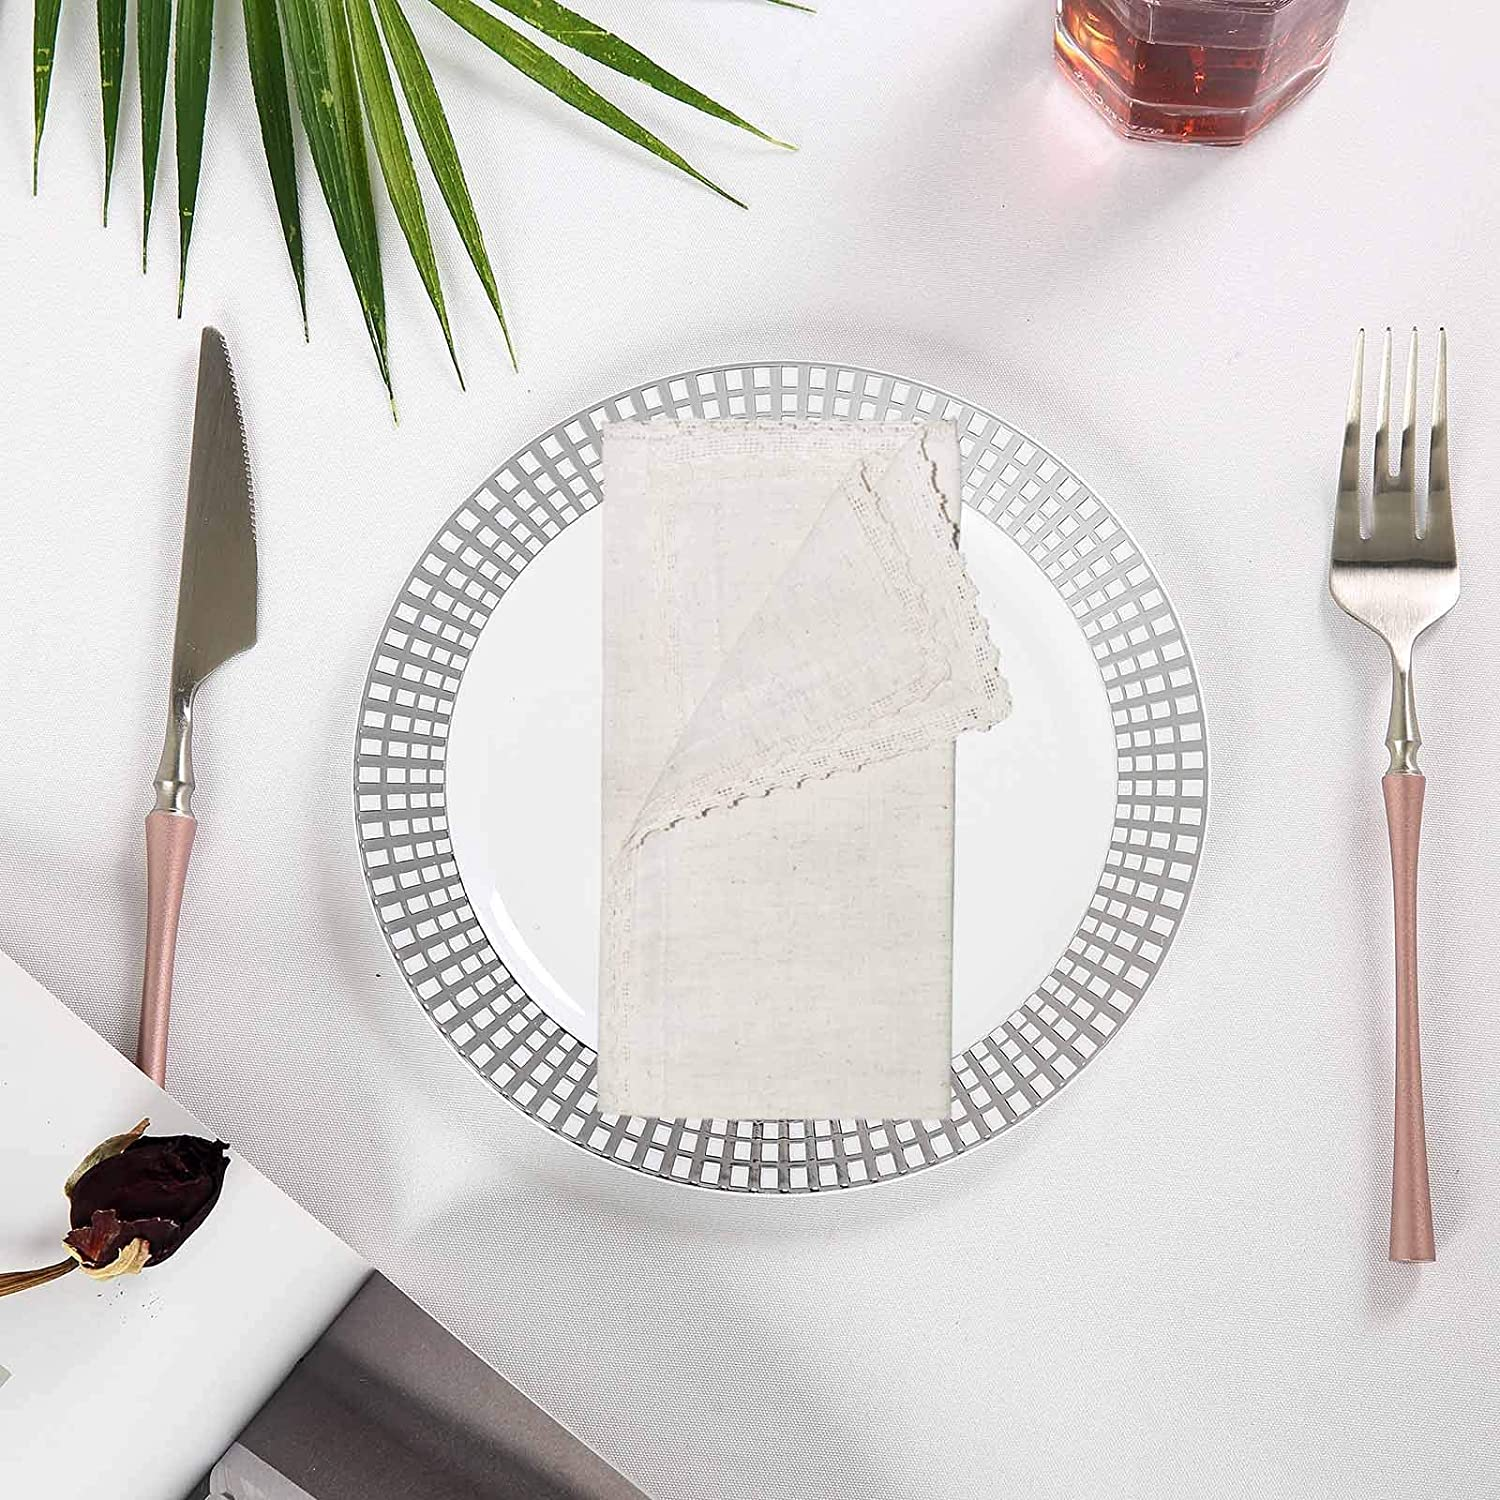 COTTON CRAFT - 12 Pack Oversized Flax with Lace Dinner Napkins - 20x20 Natural, Tailored with Mitered Corners and a Generous Hem, Napkins are 38% Larger Than Standard Size Napkins: Home & Kitchen